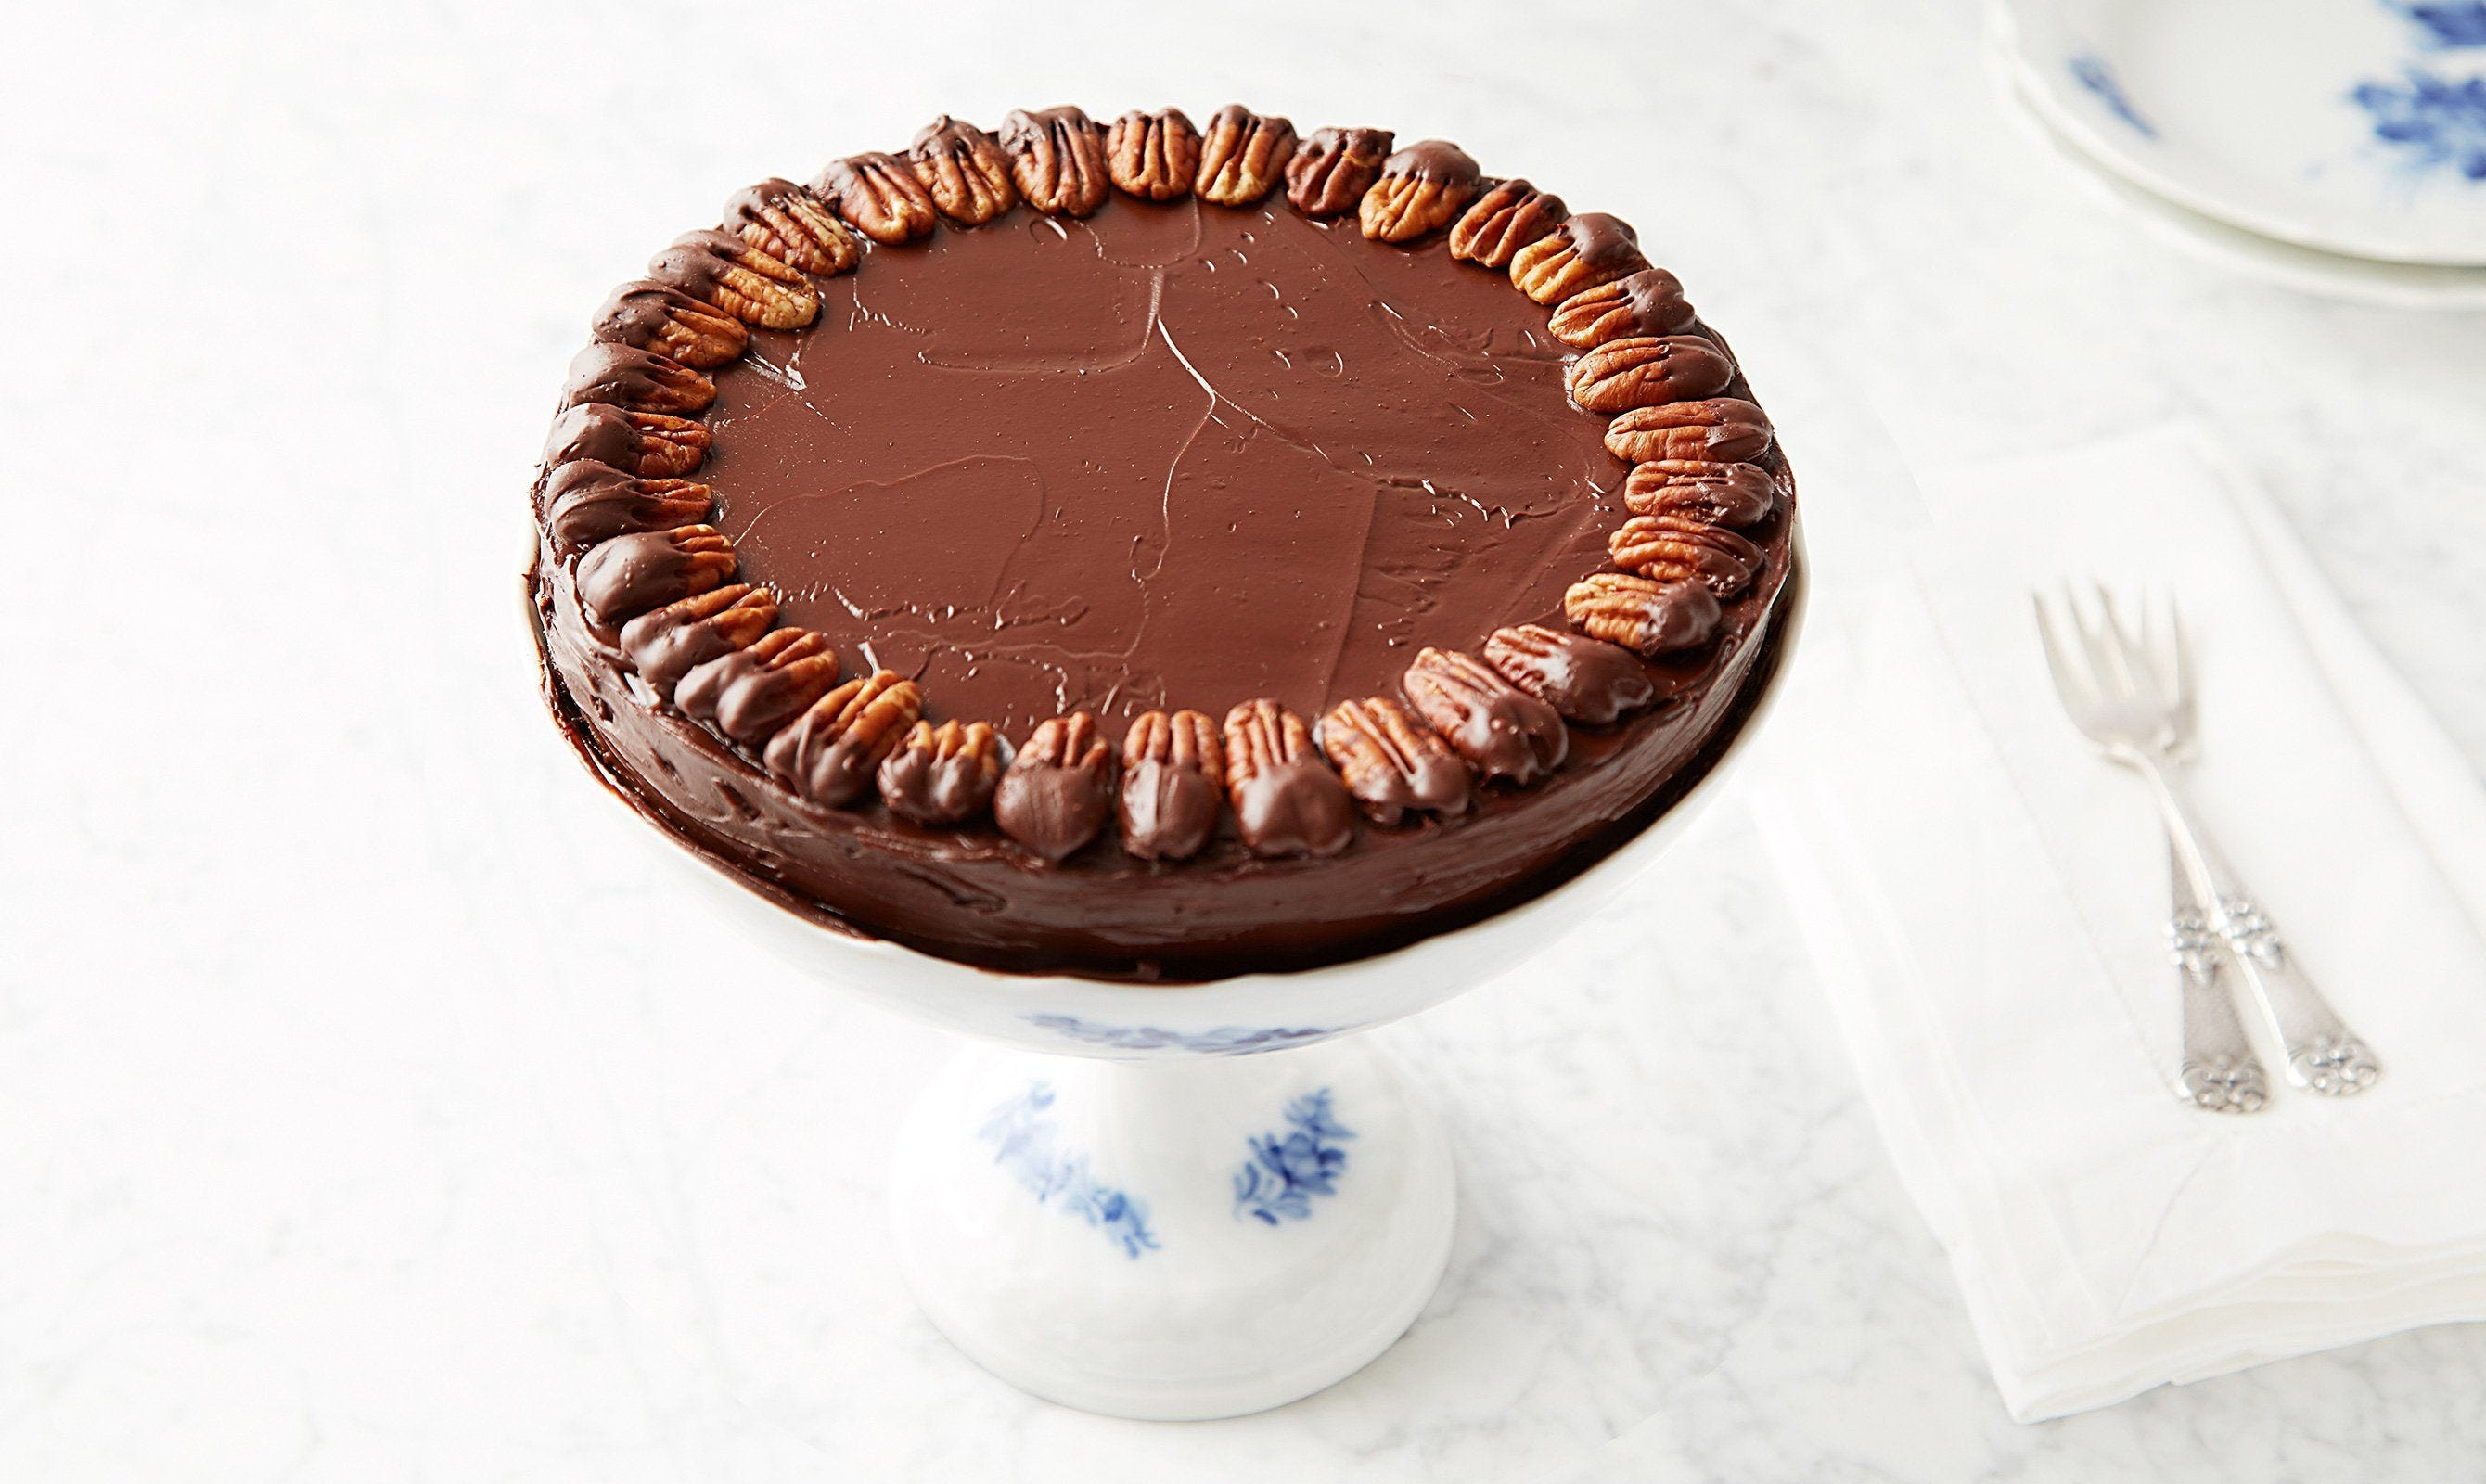 Chocolate Pecan Torte with Chocolate Glaze recipe.